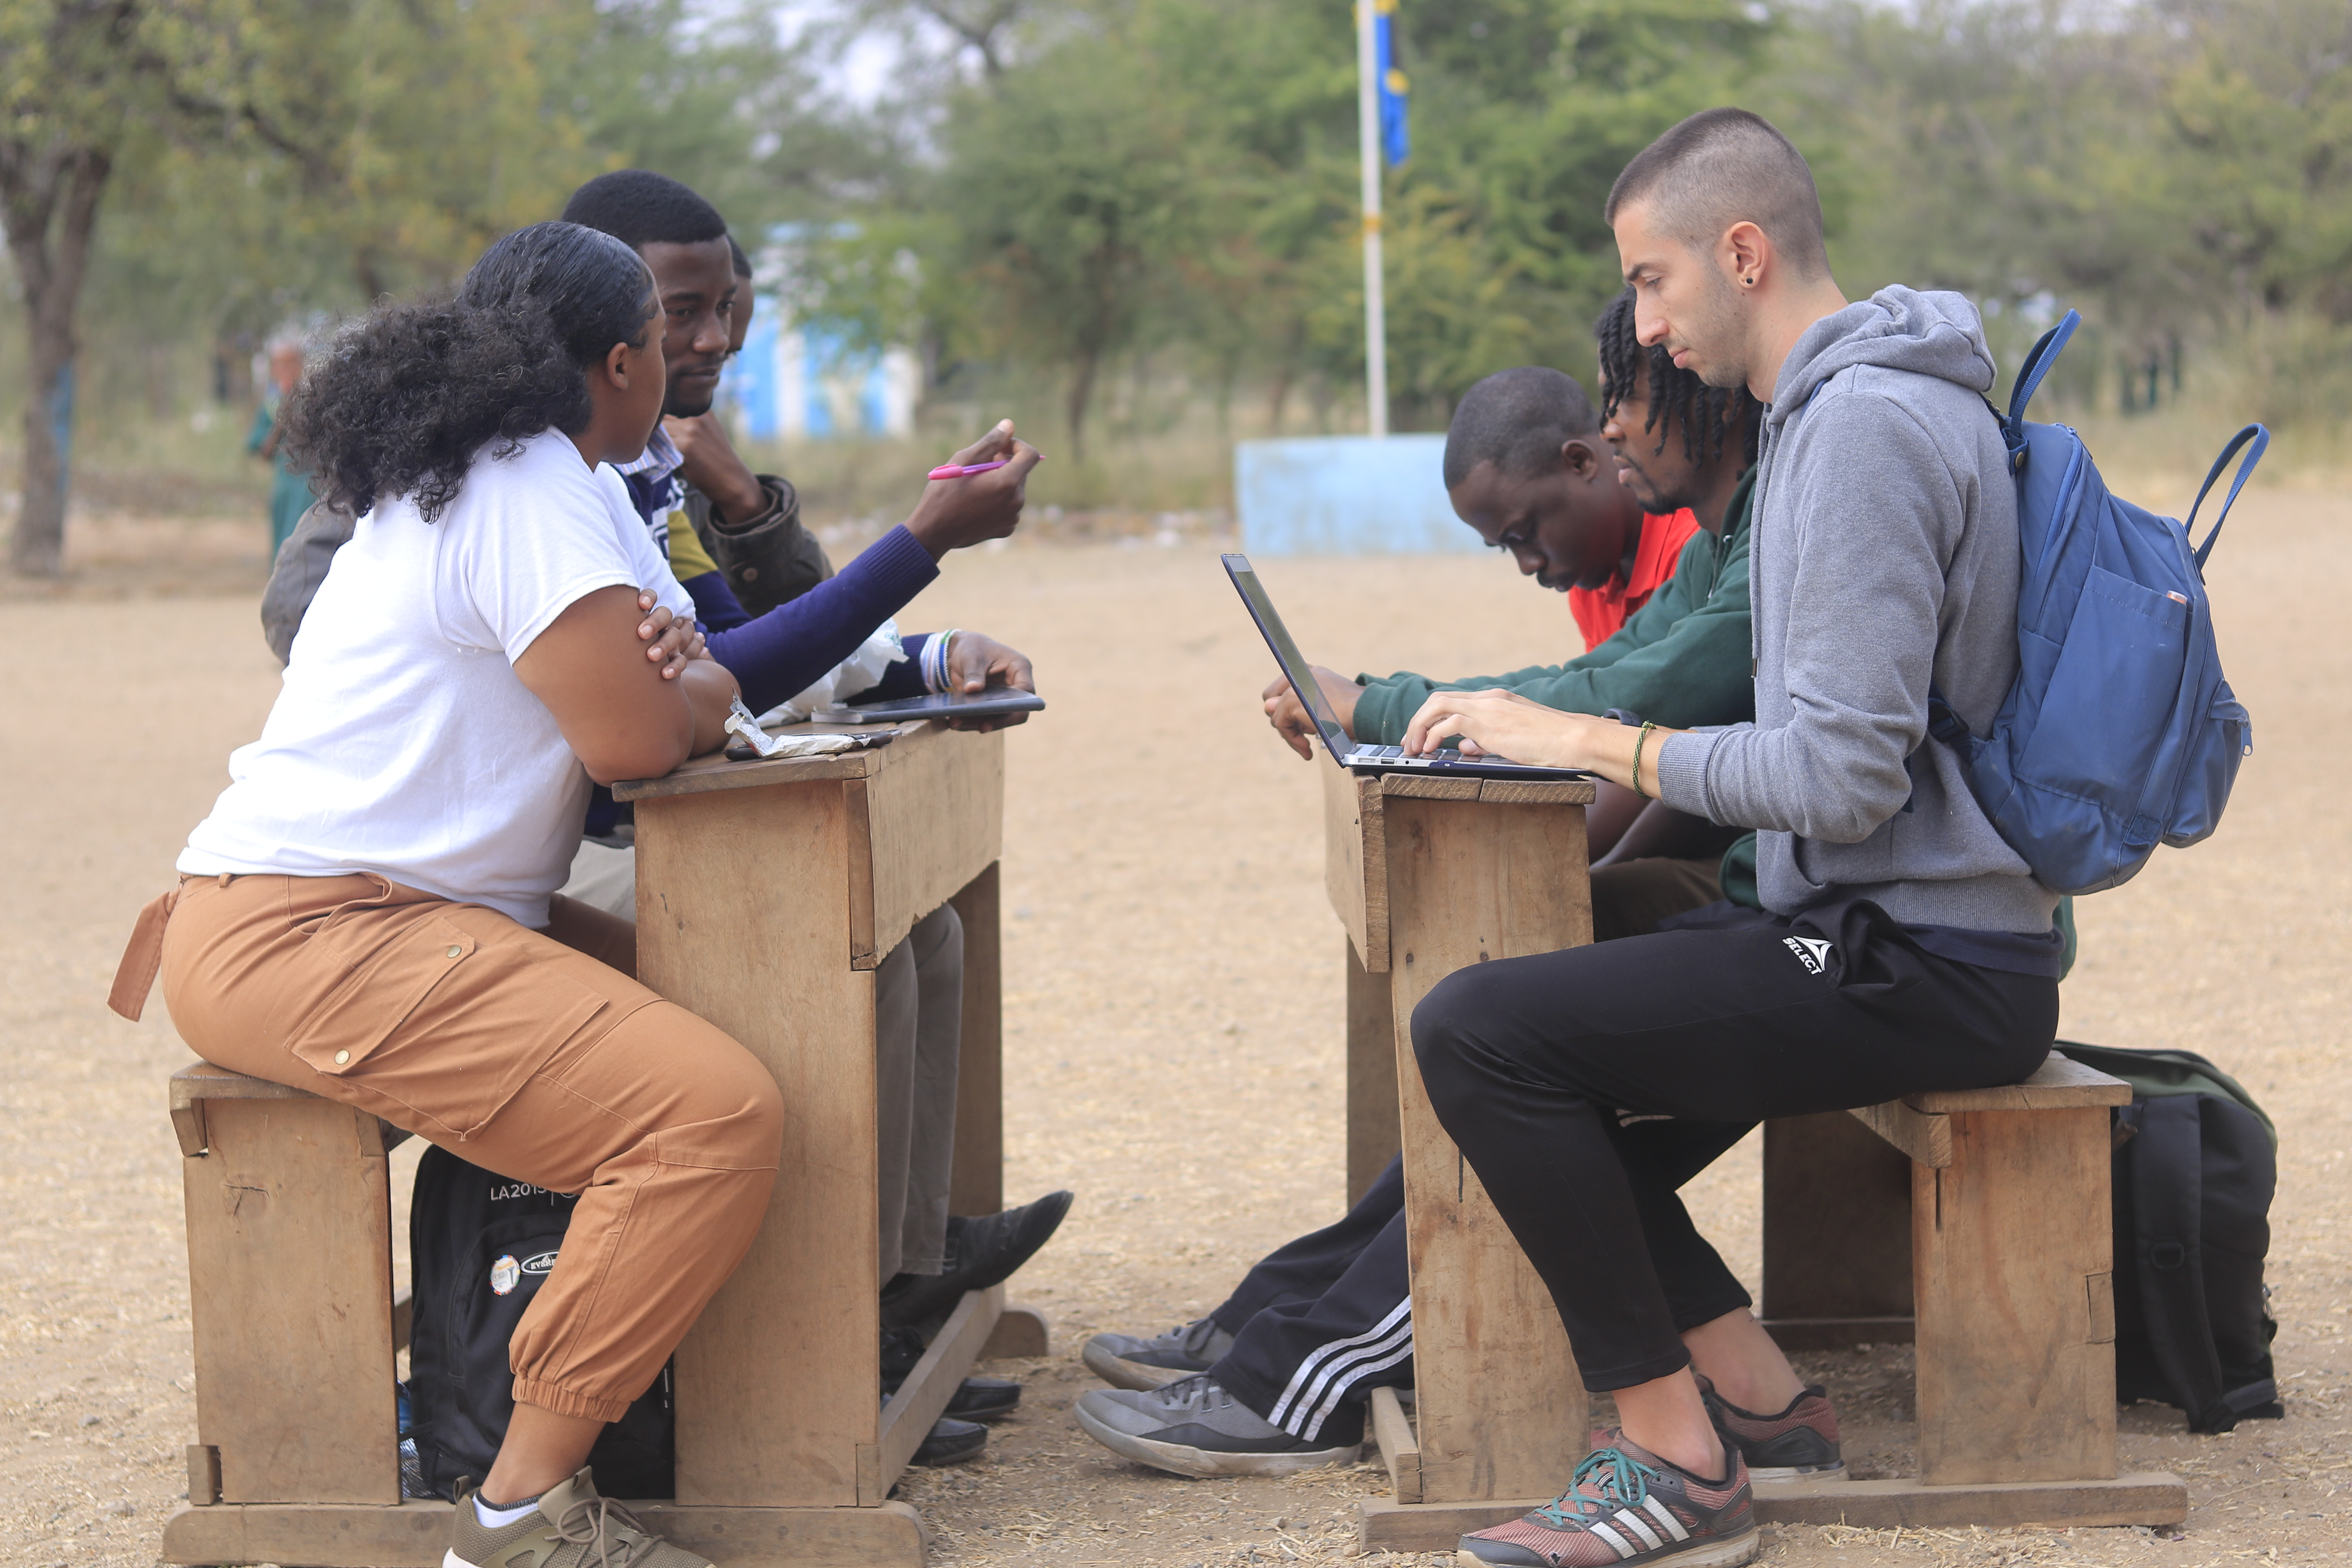 Six students sittings on wooden benches and desks outside with their laptops, papers, and pens. There are two wooden benches that face each other, with three students sitting on each side.